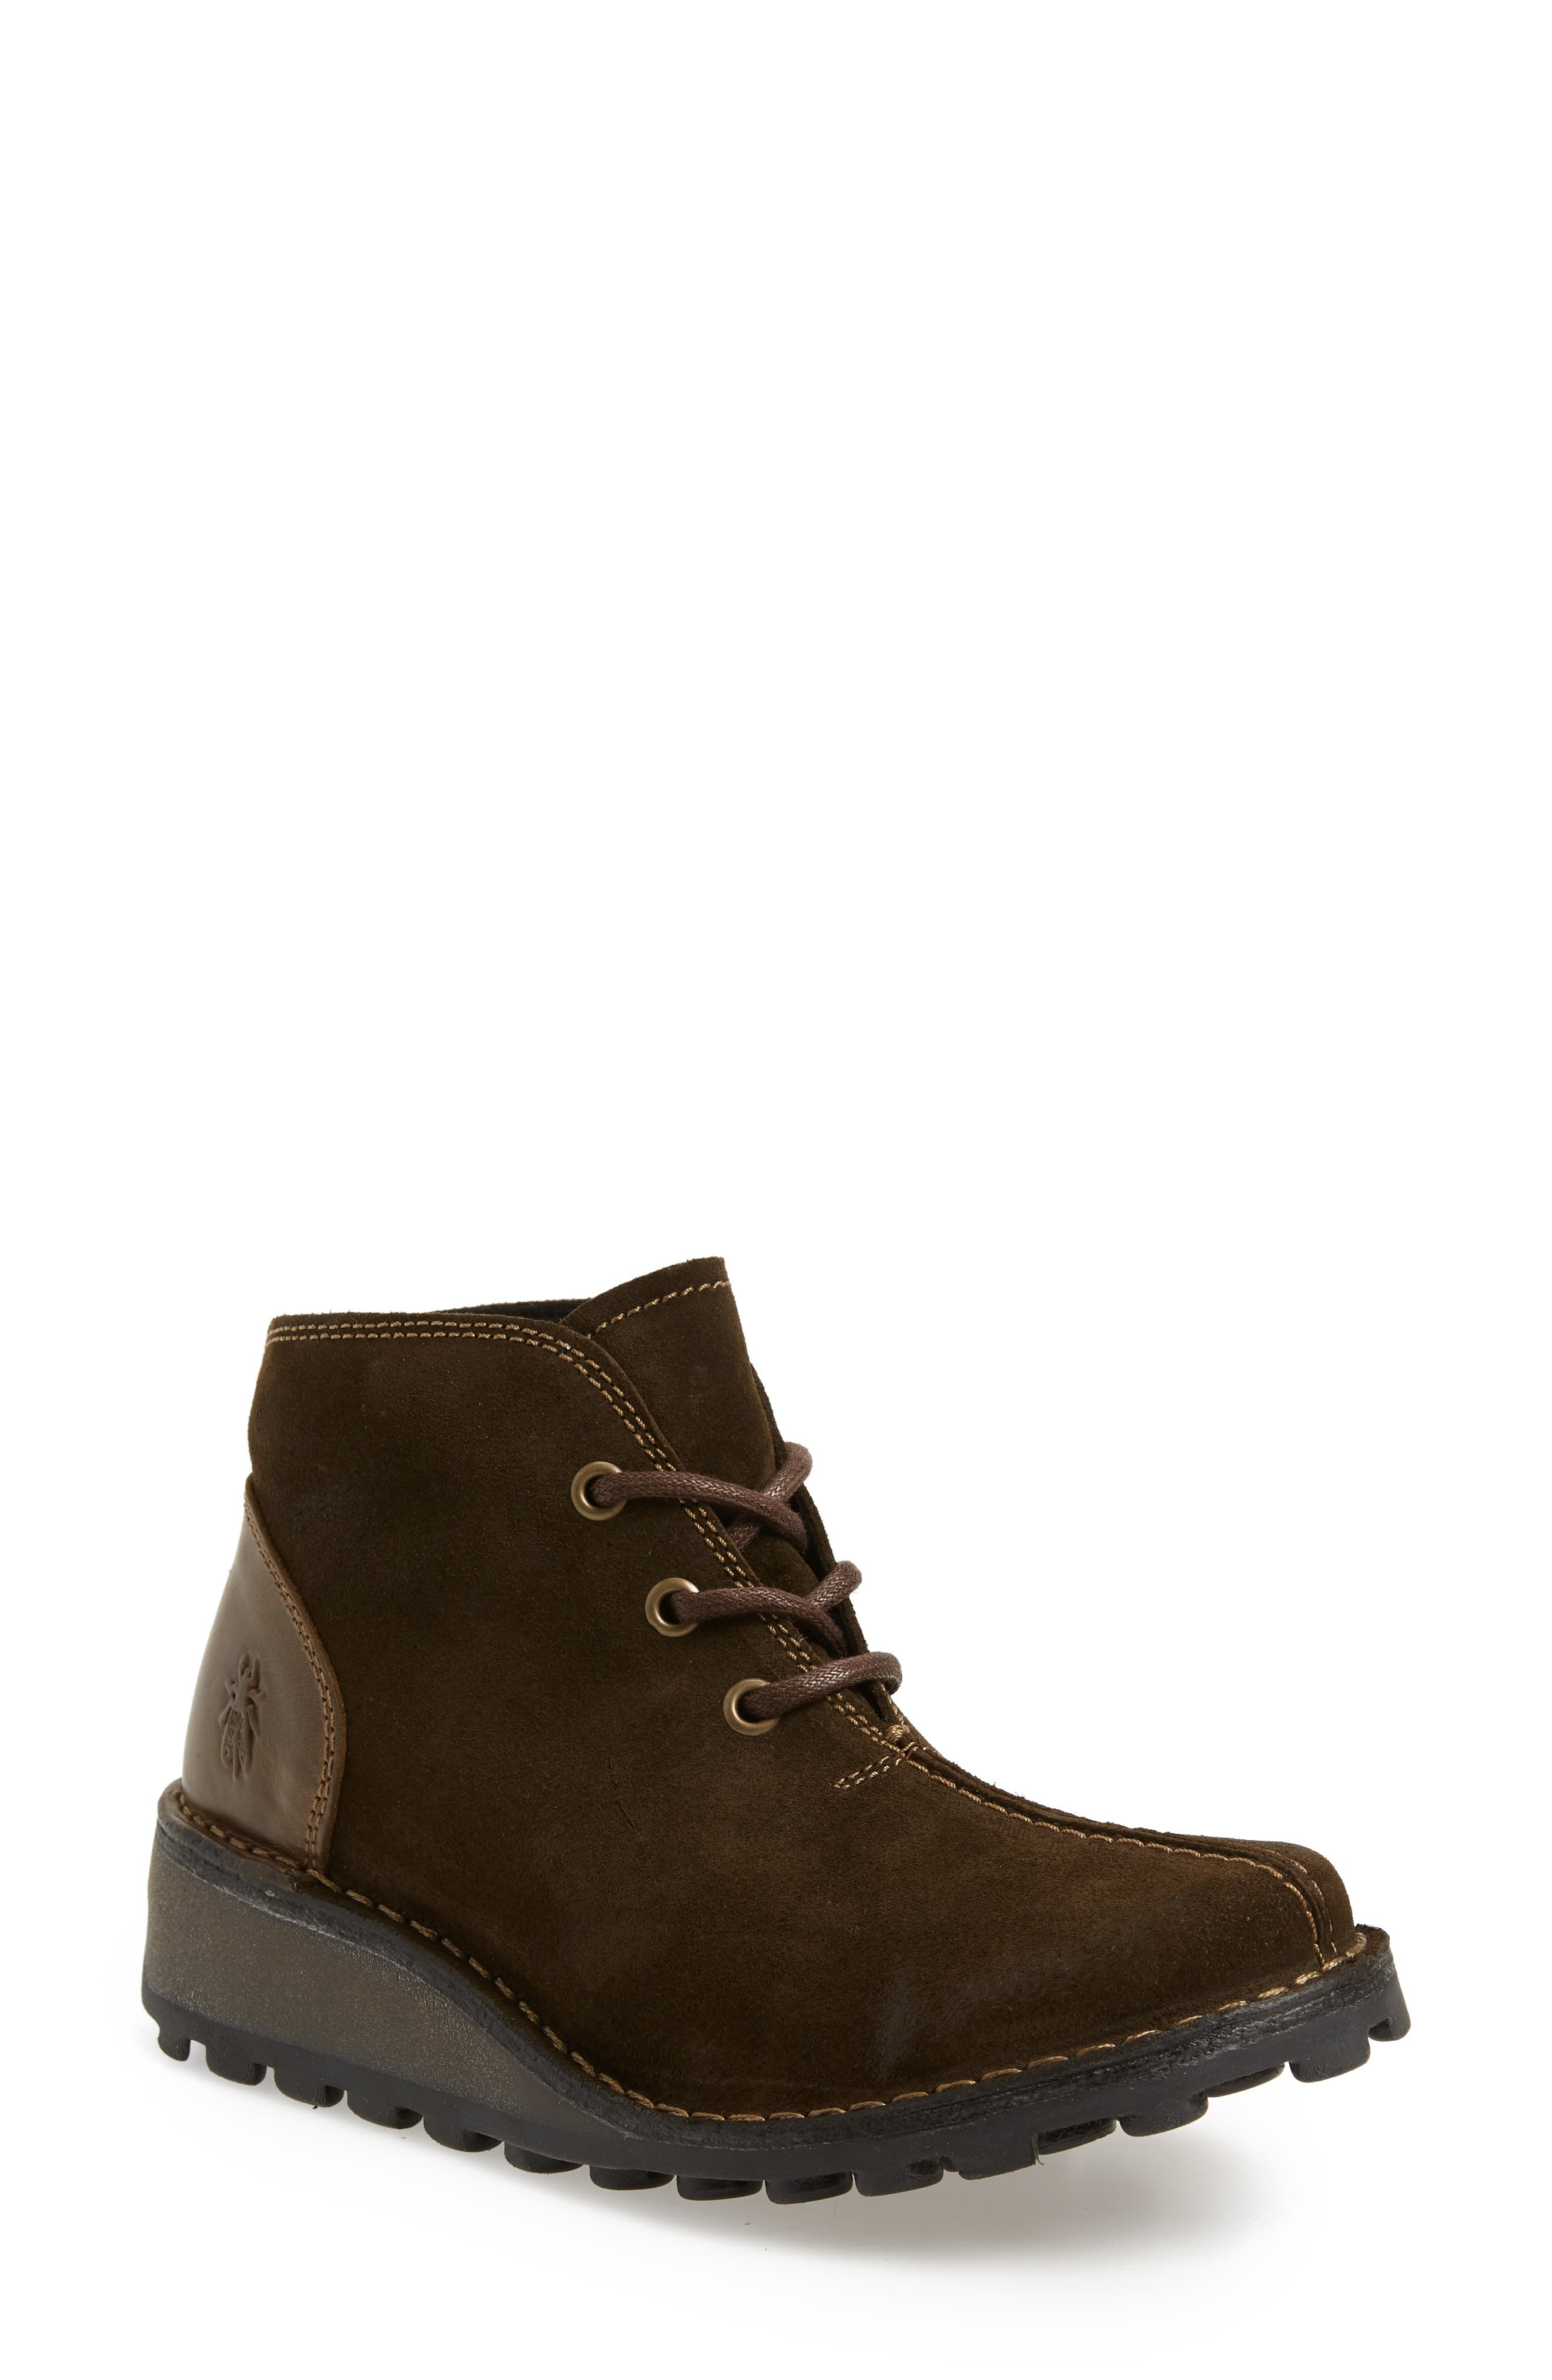 Fly London Mili Wedge Bootie - Green